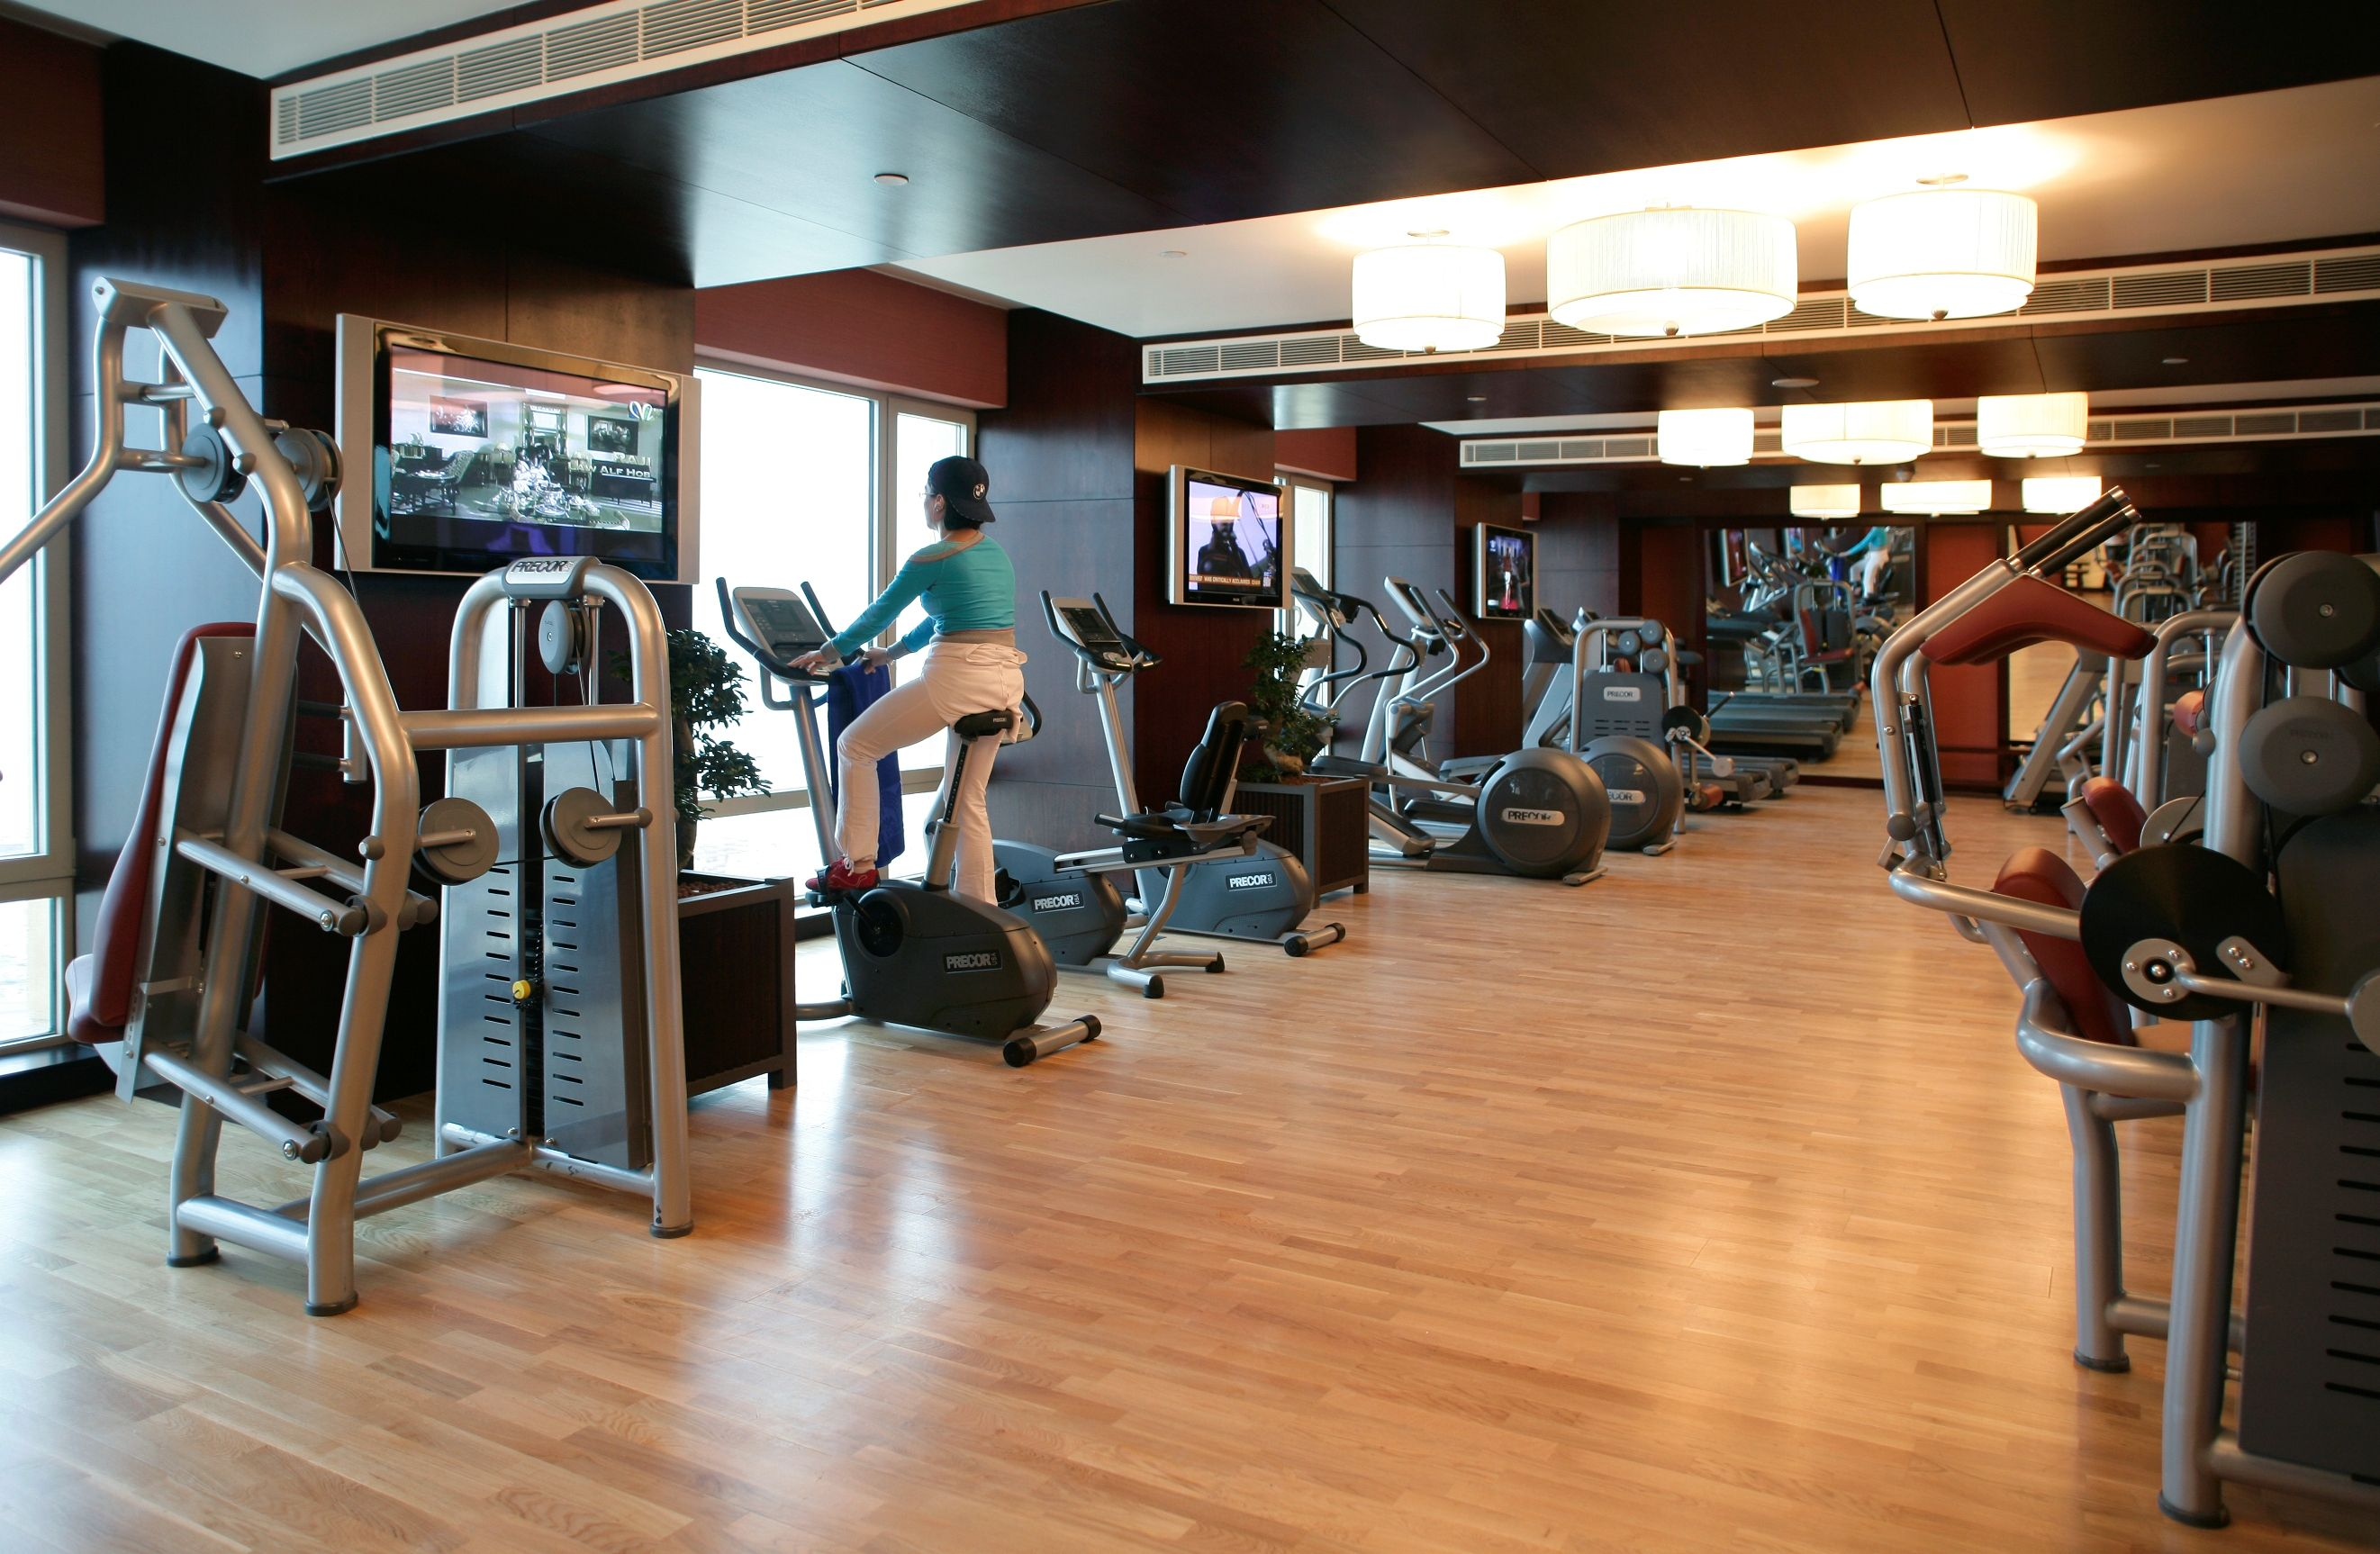 Make it a habit to go to the gym to burn calories and unwanted fats. Visit #Bodylines or email bodylines.almanshar@rotana.com to know more about its existing offers #gym #health #wellness #exercise #body #almansharrotana #kuwait #fahaheel